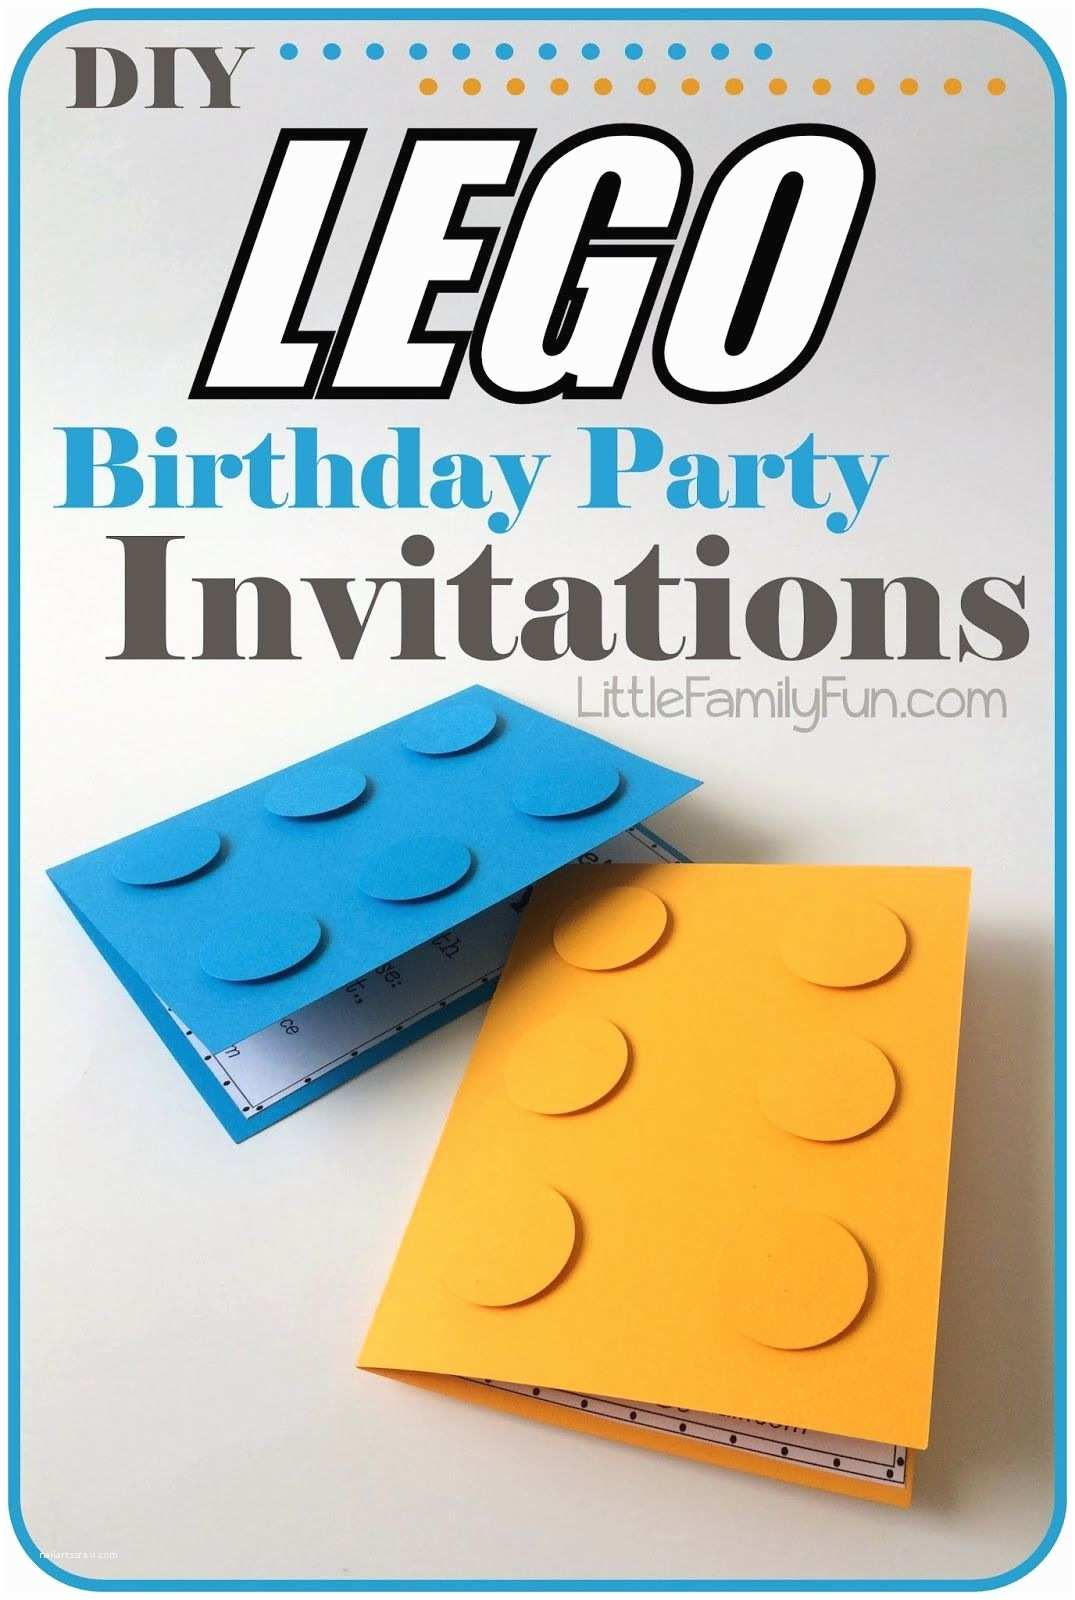 Lego Party Invitations Lego Party Invitations S and for